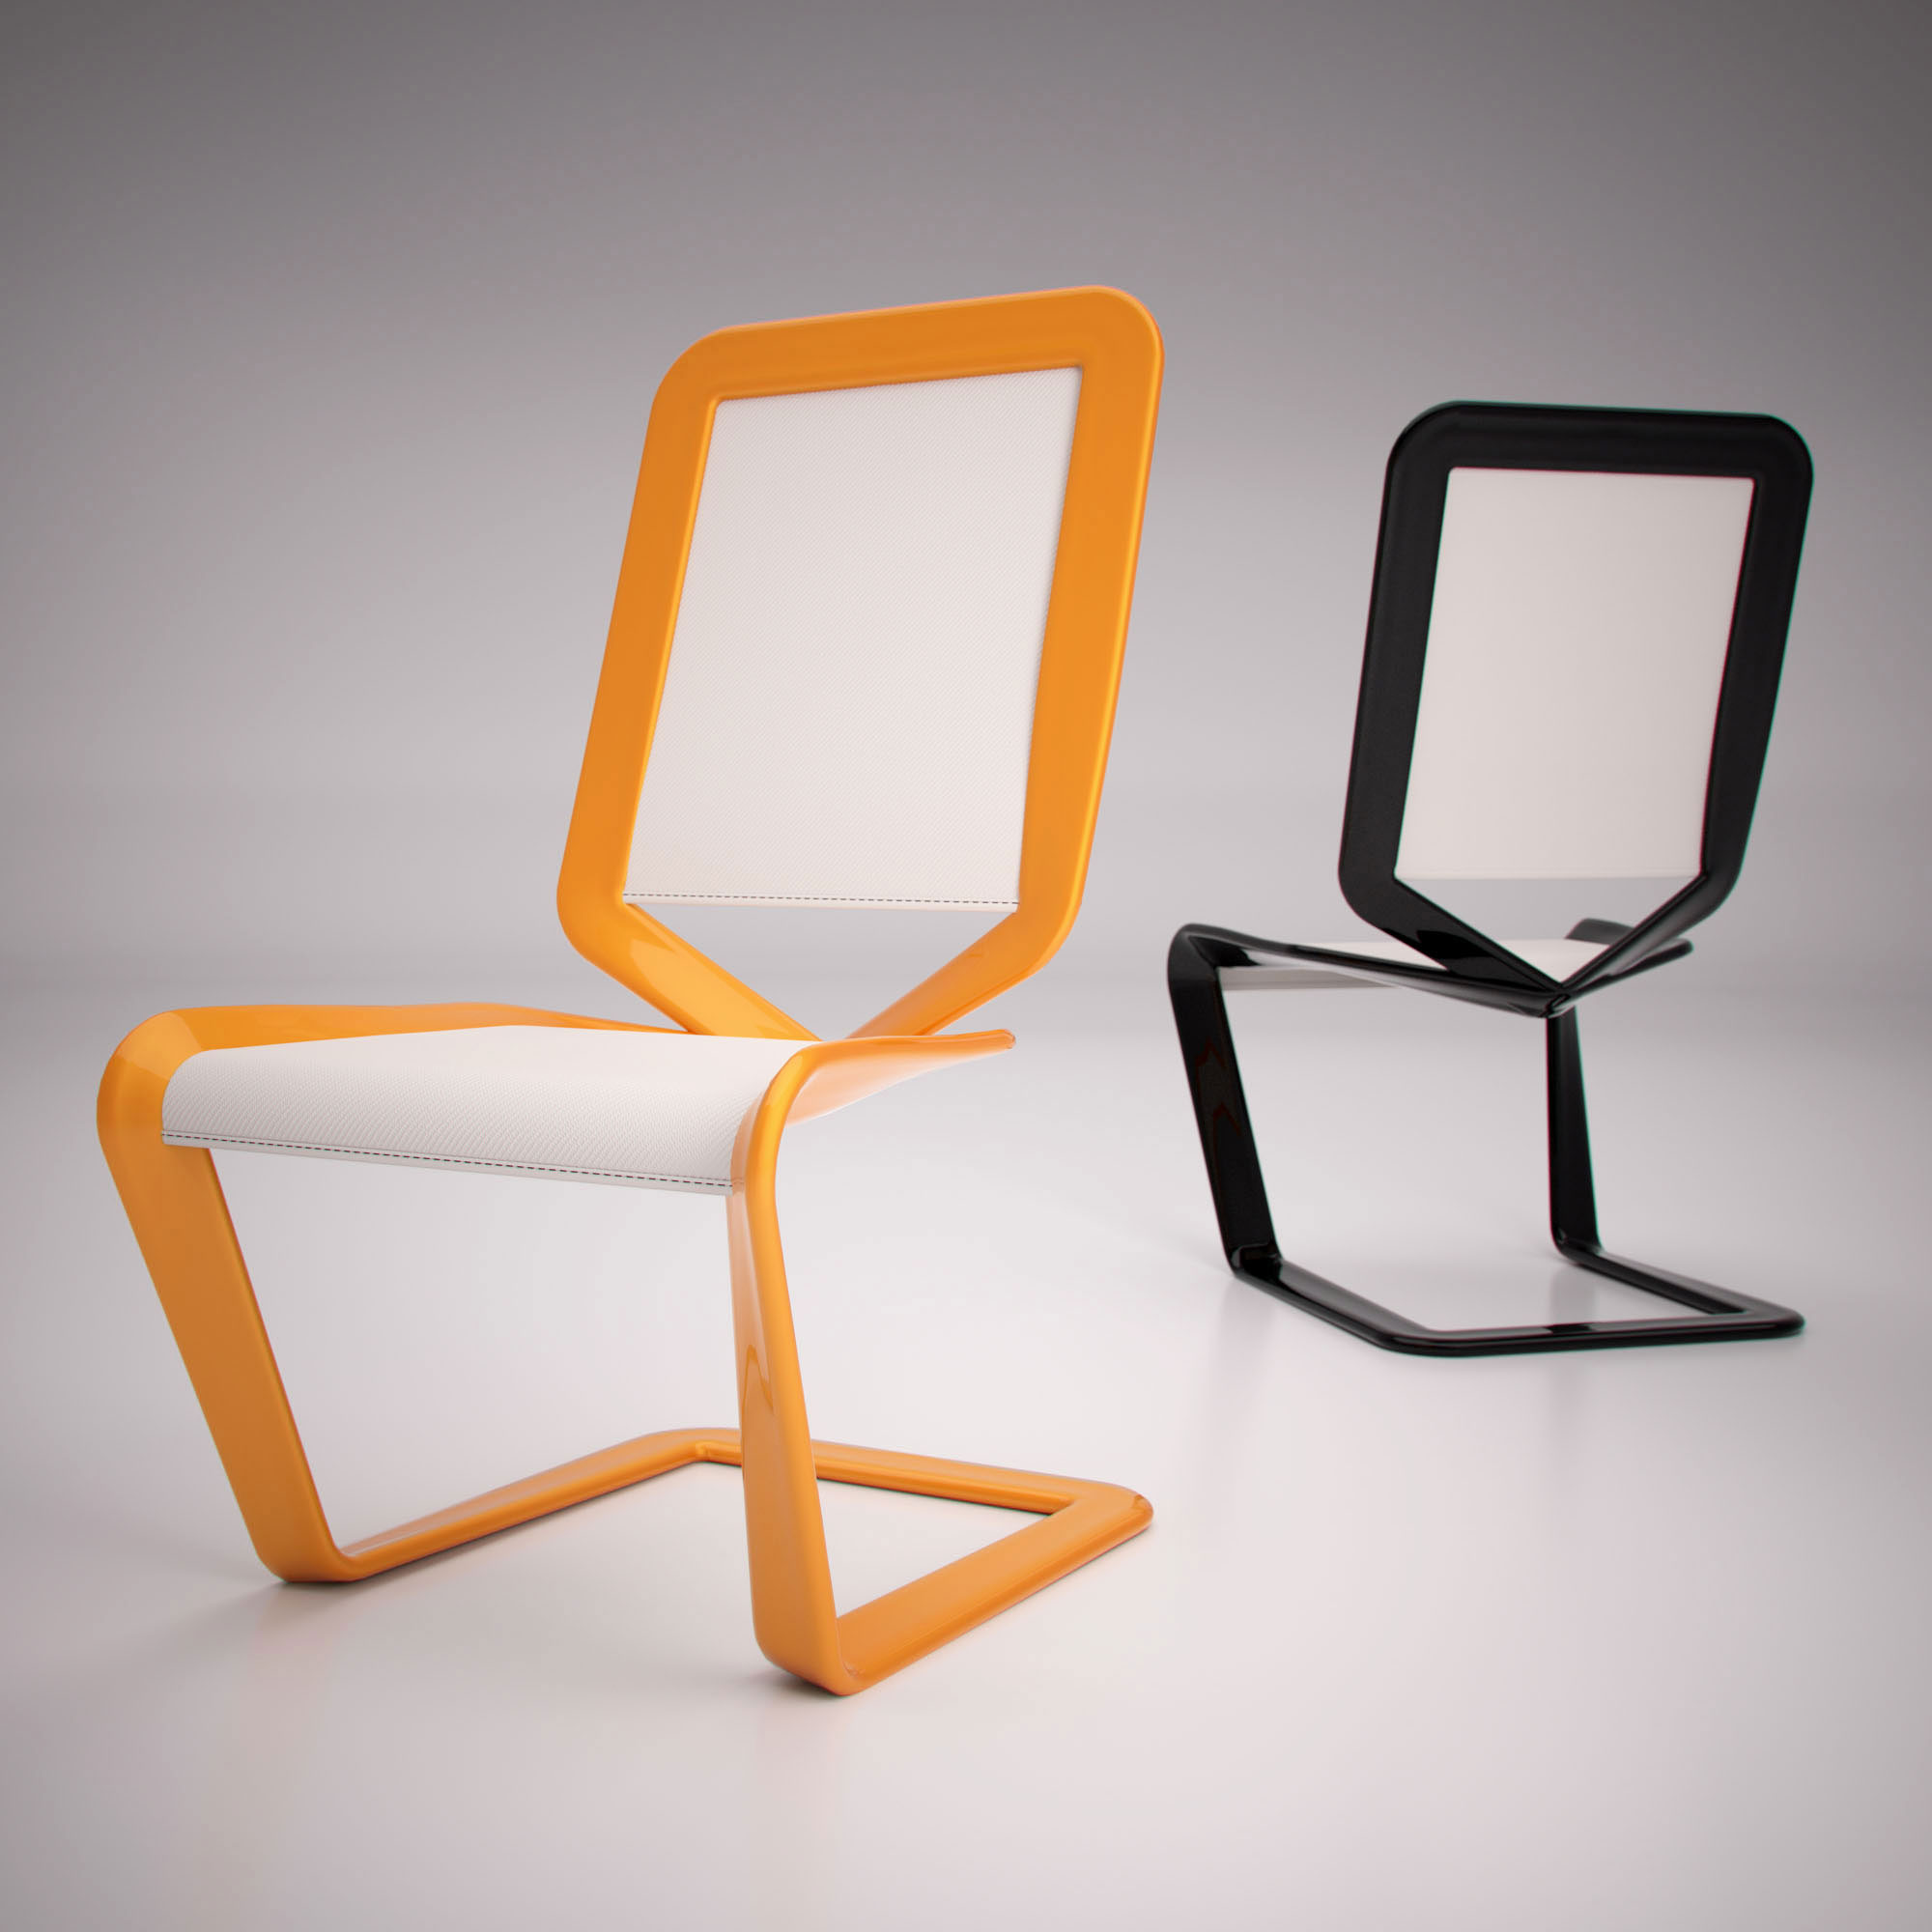 Infinity Chair Concept Doliwa Workshop